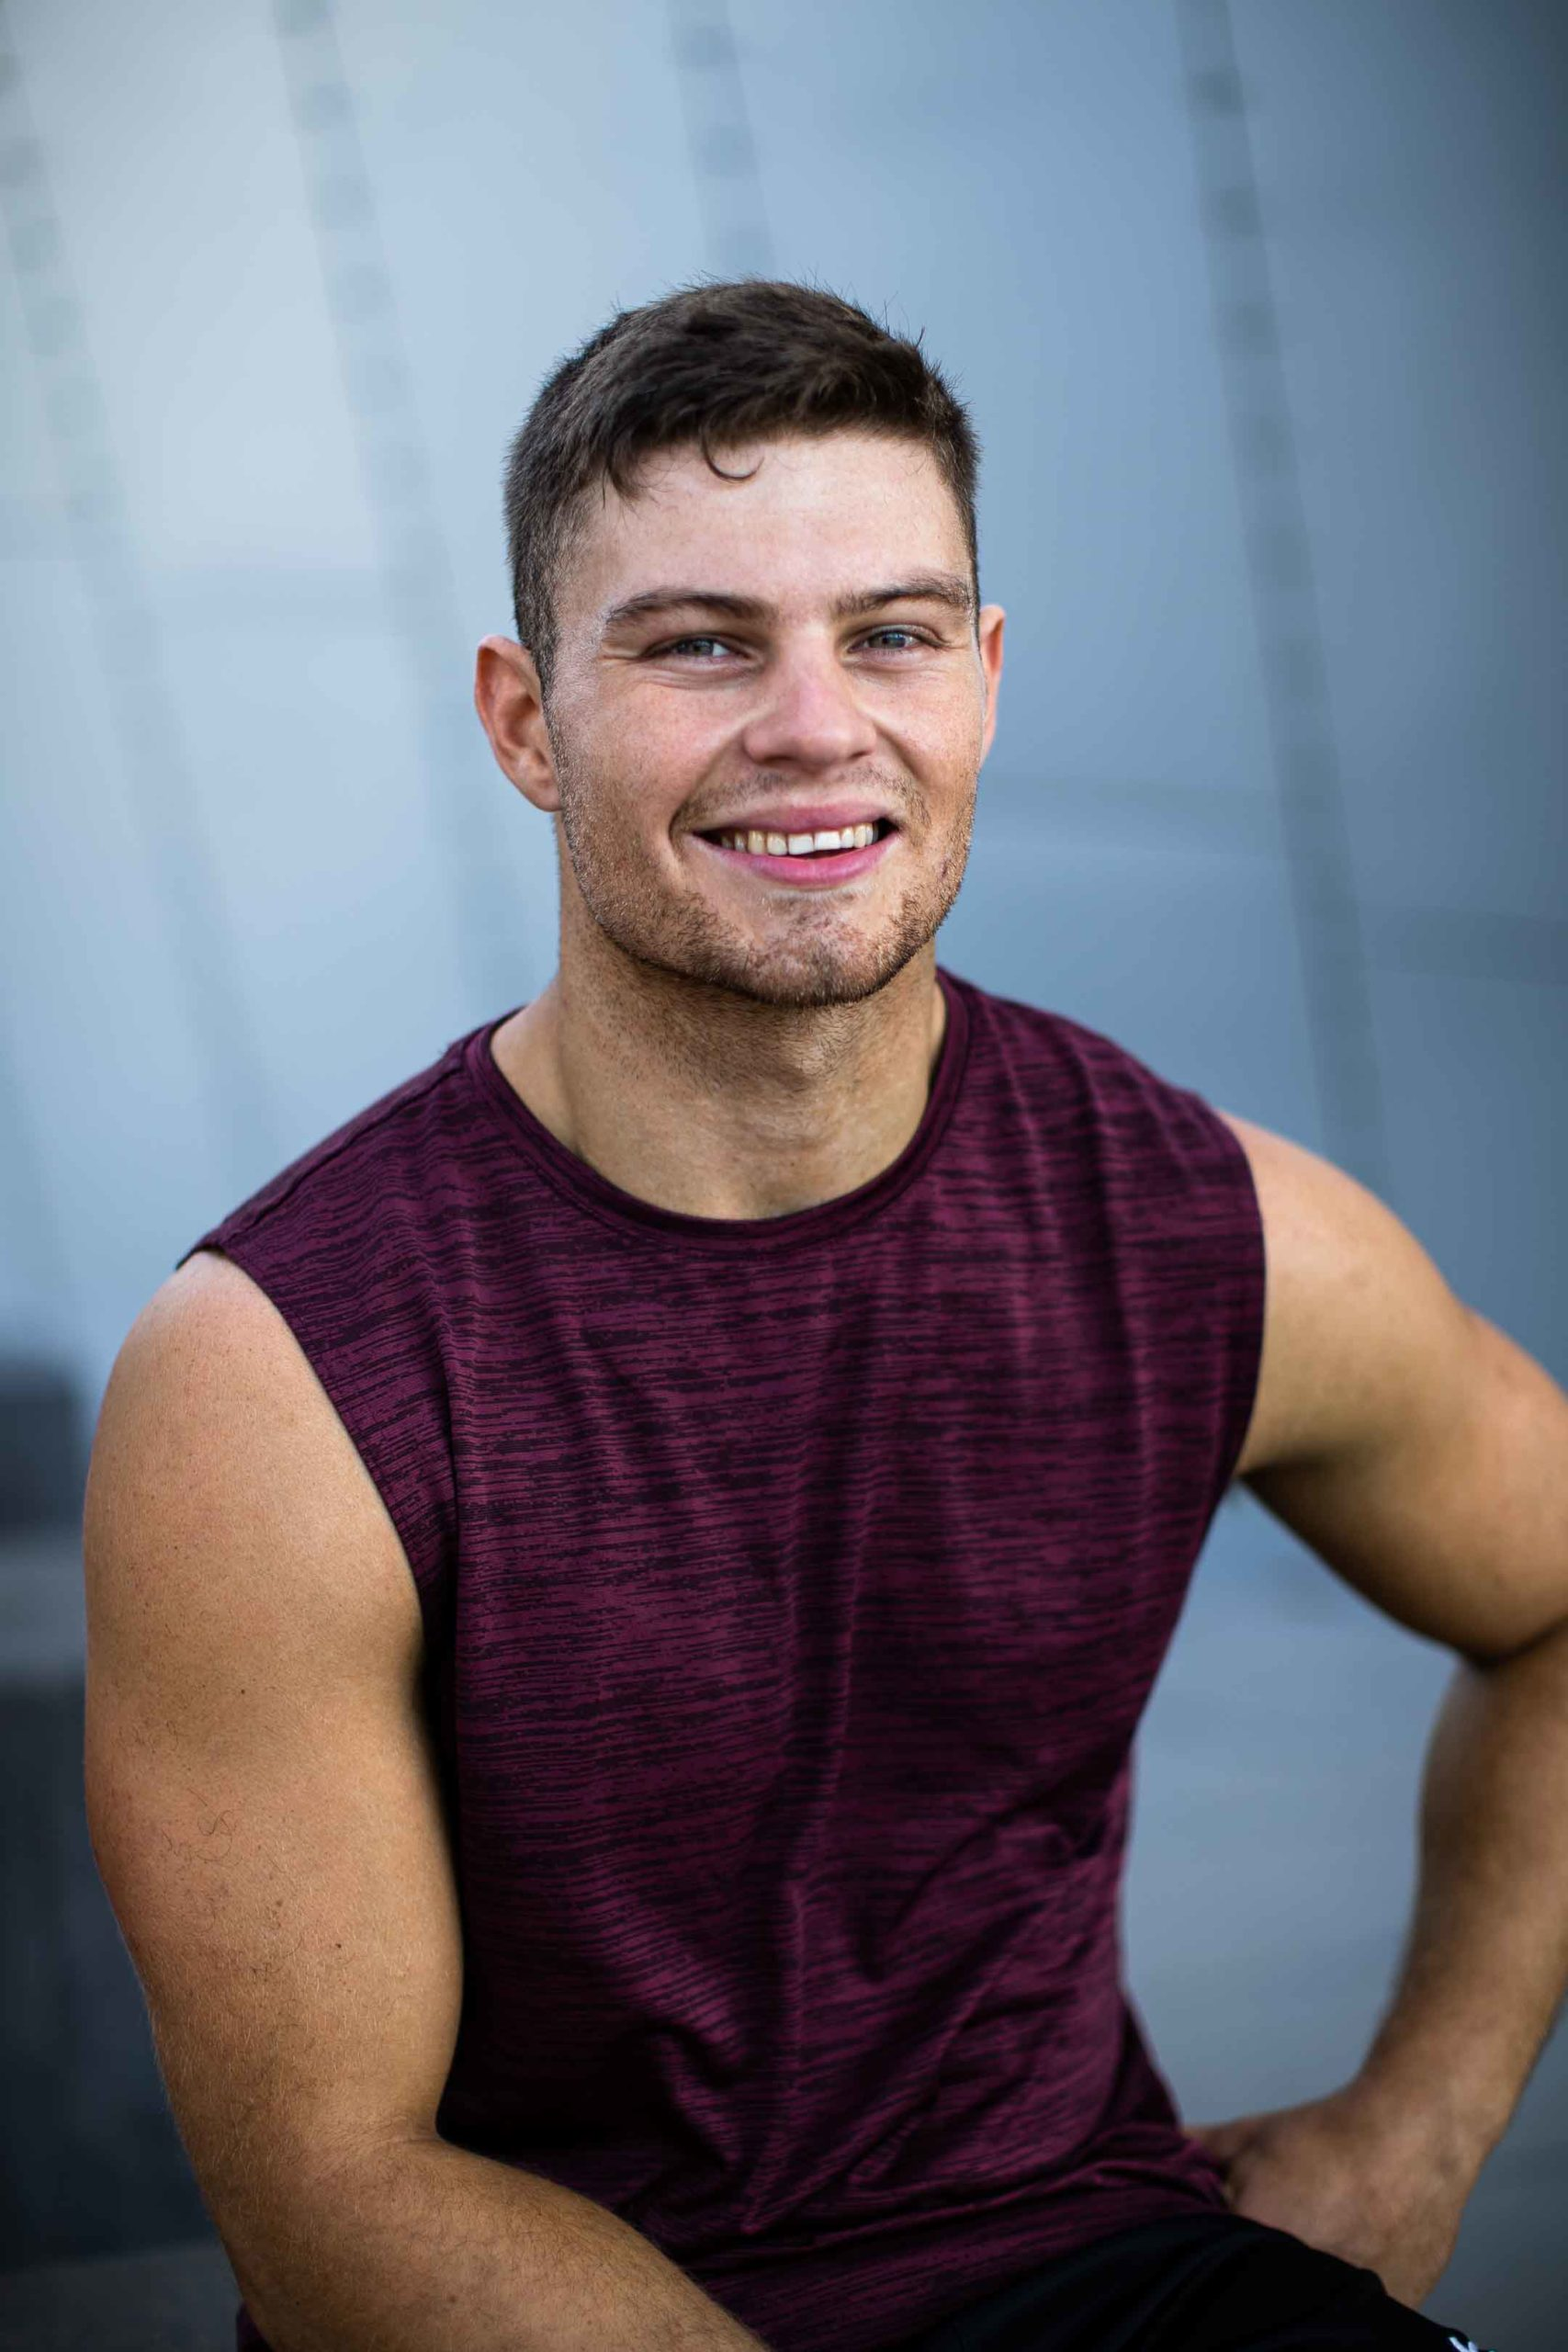 Sean seated smiling during his fitness shoot